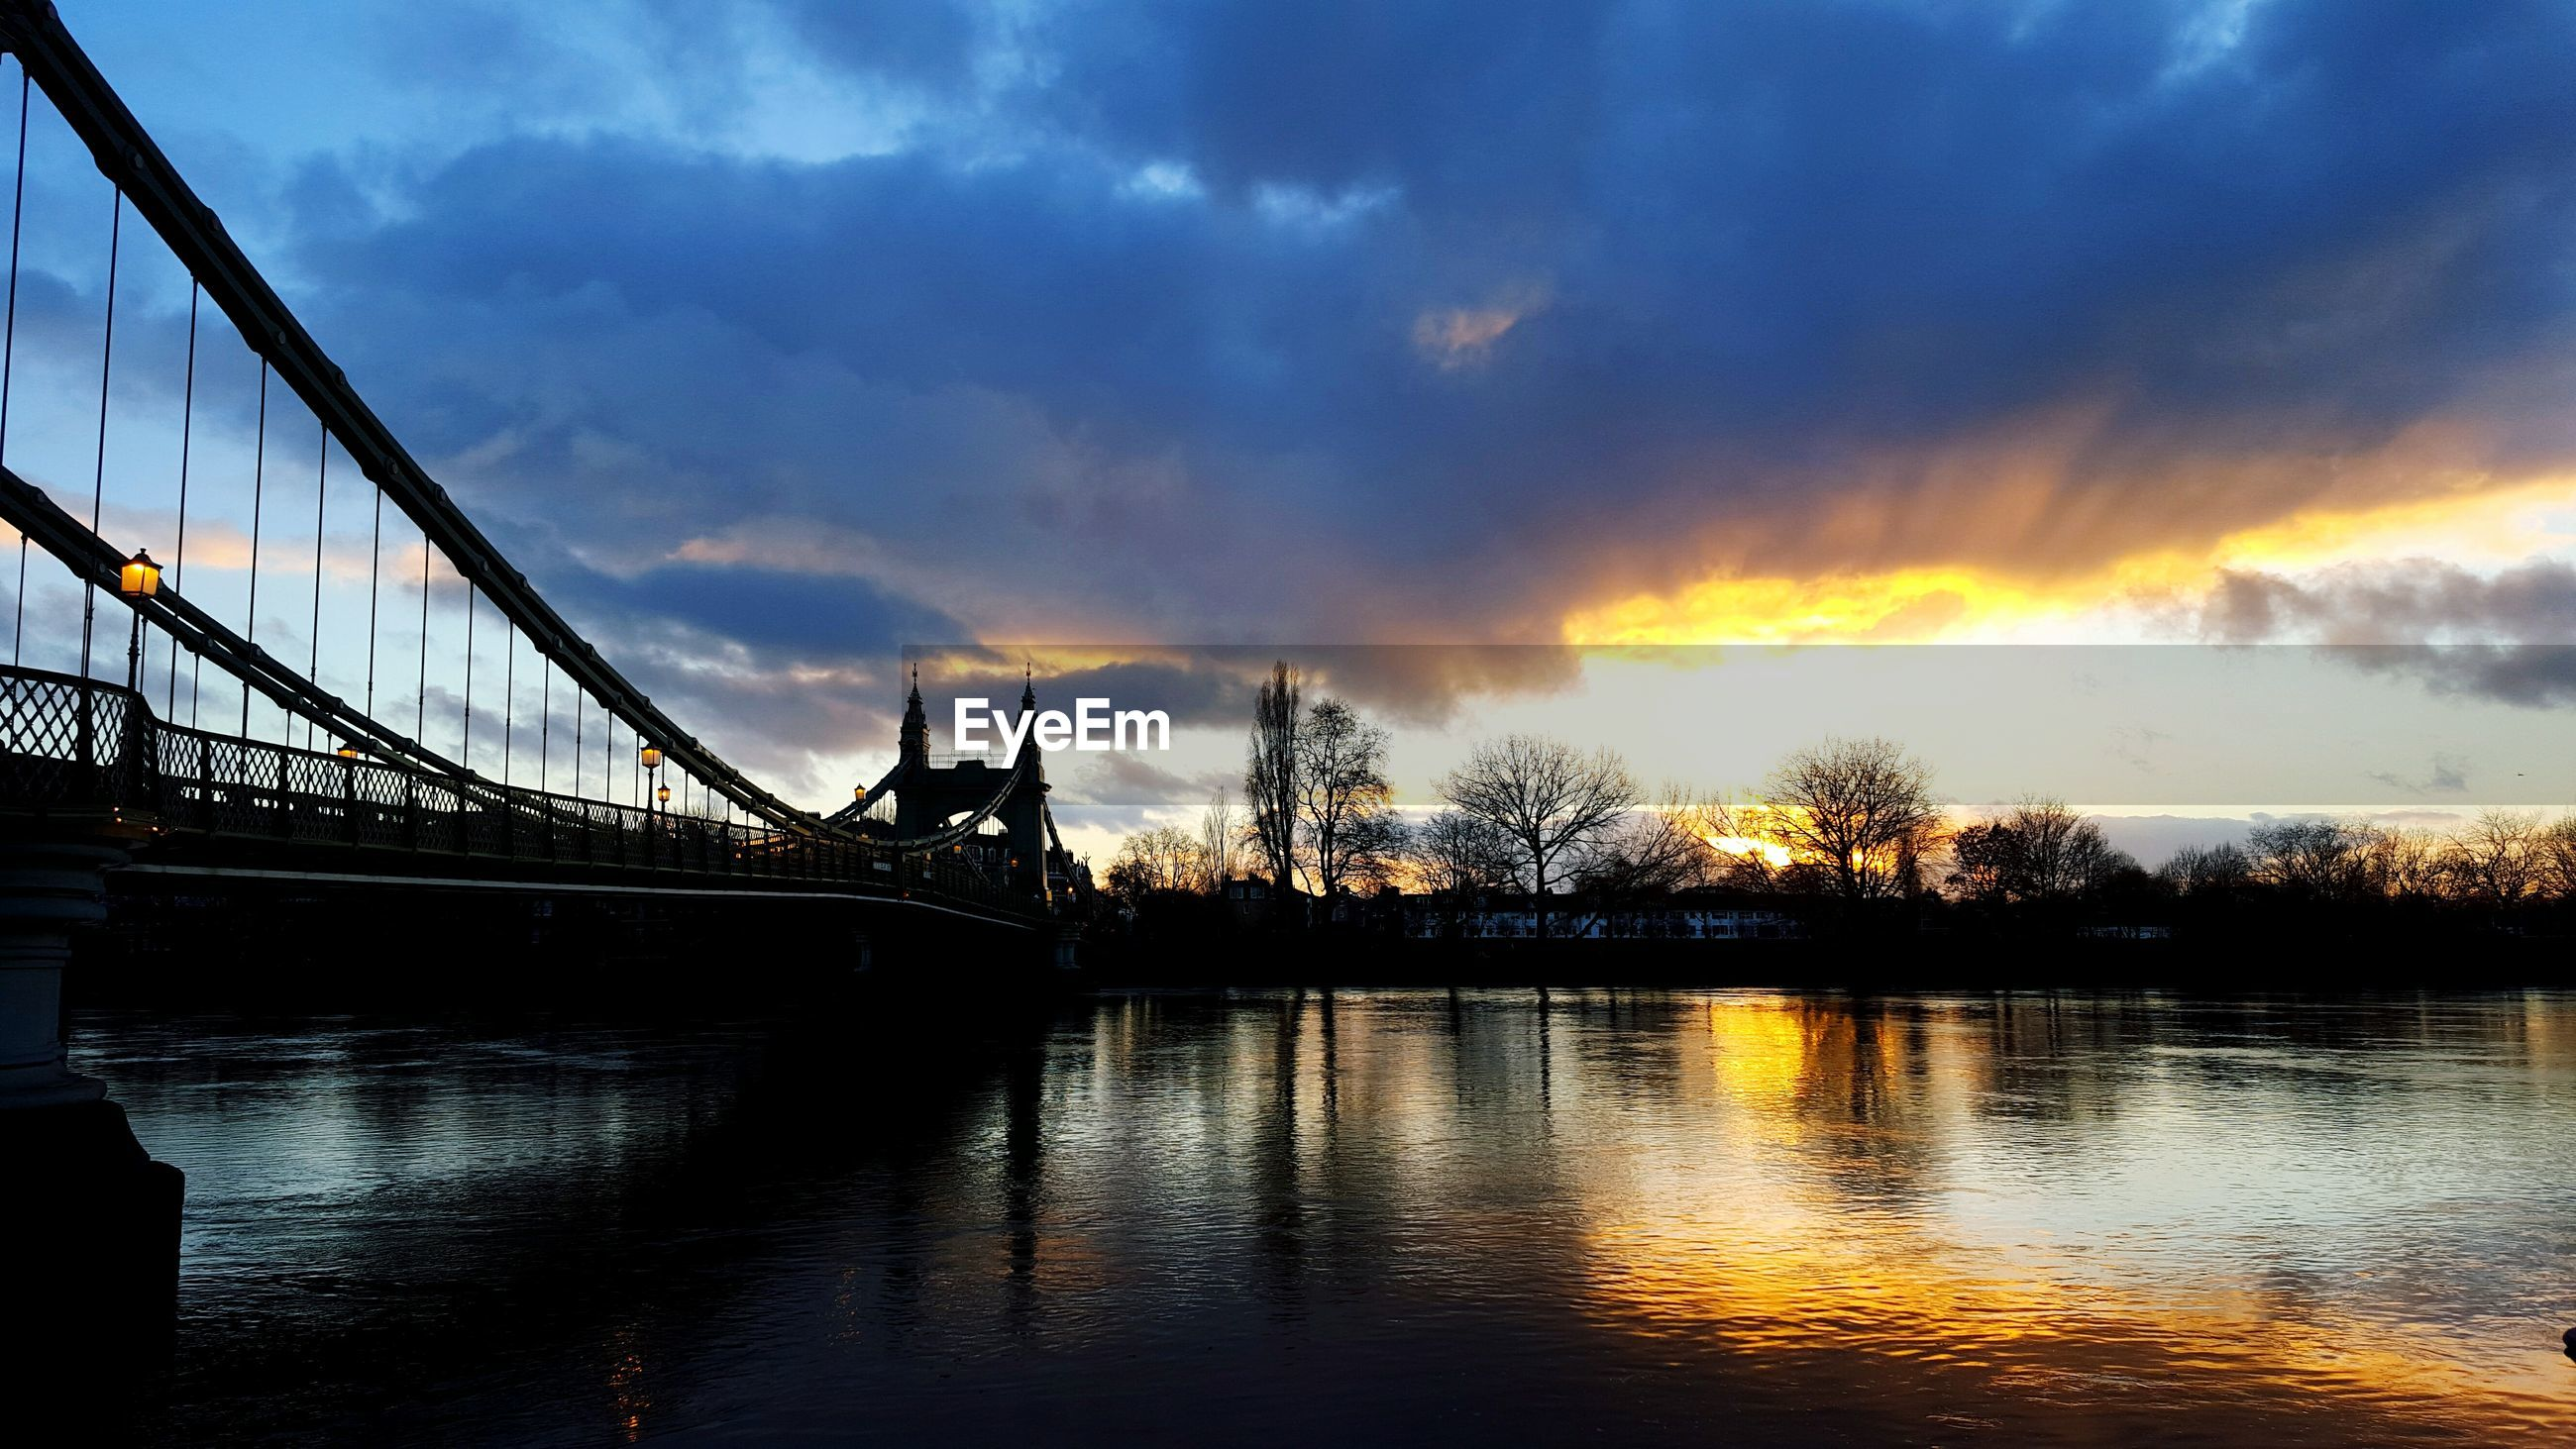 Hammersmith bridge over thames river against cloudy sky during sunset